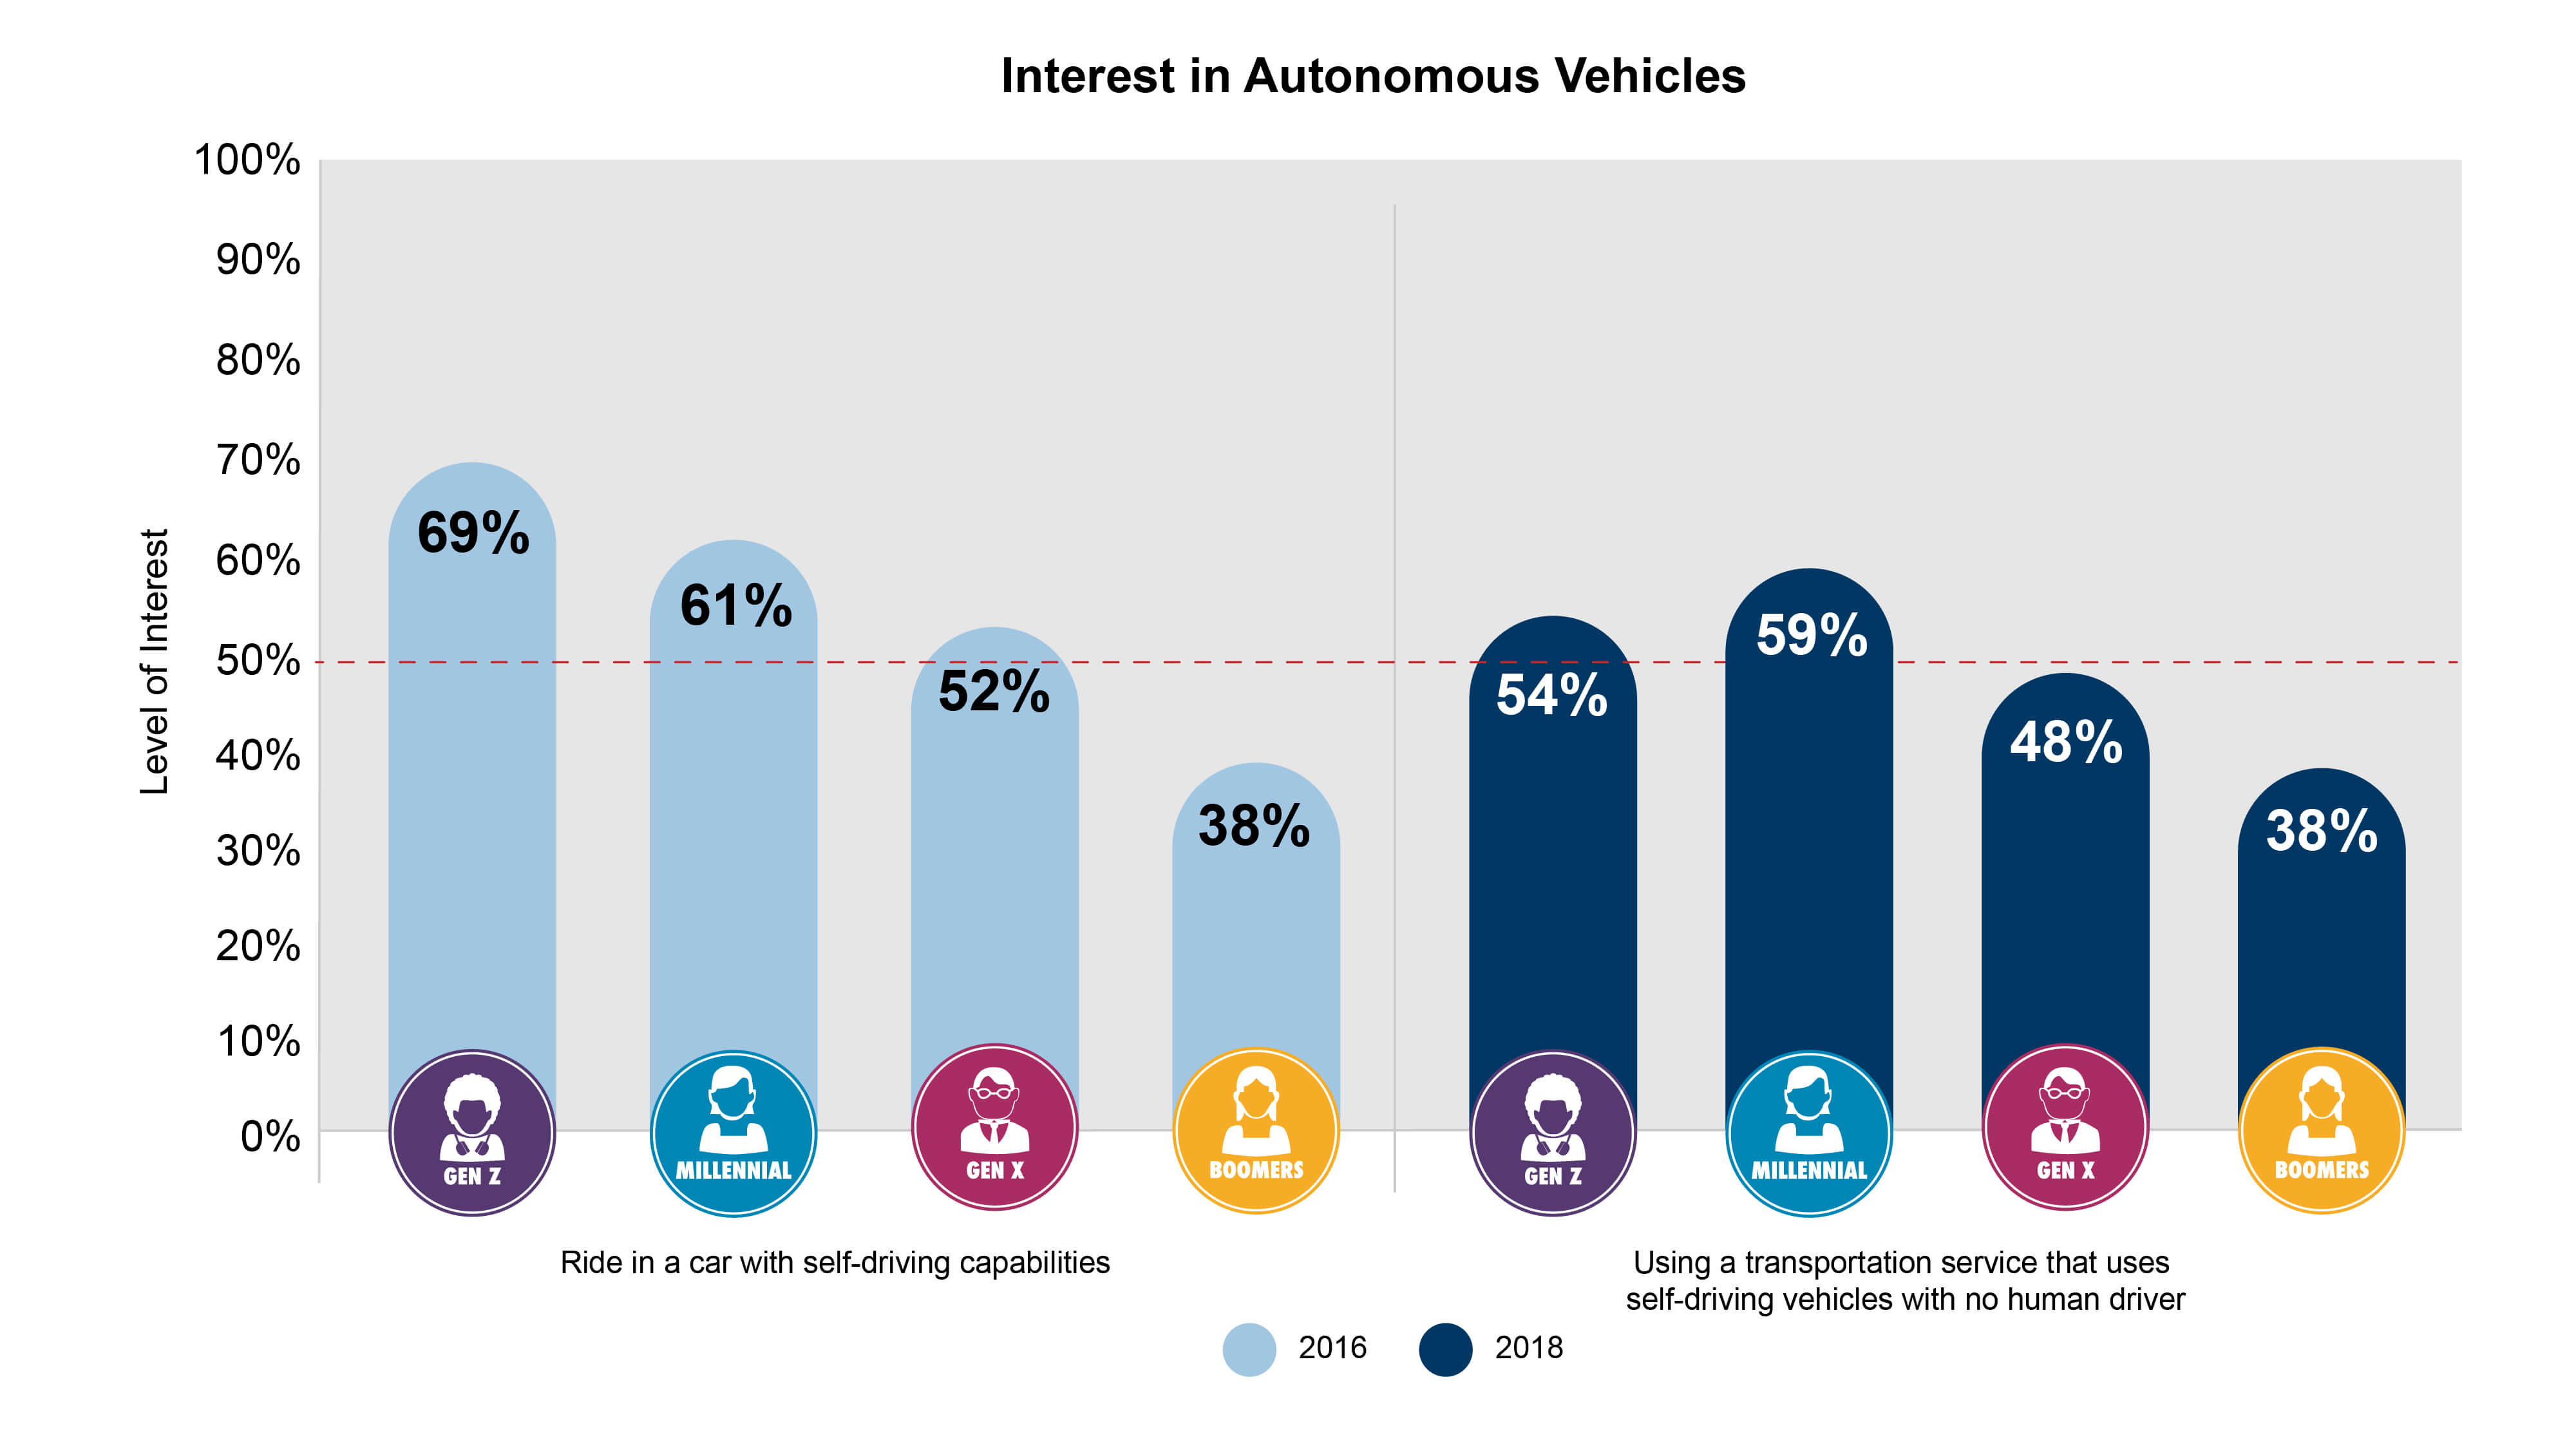 Consumer interest in autonomous vehicles